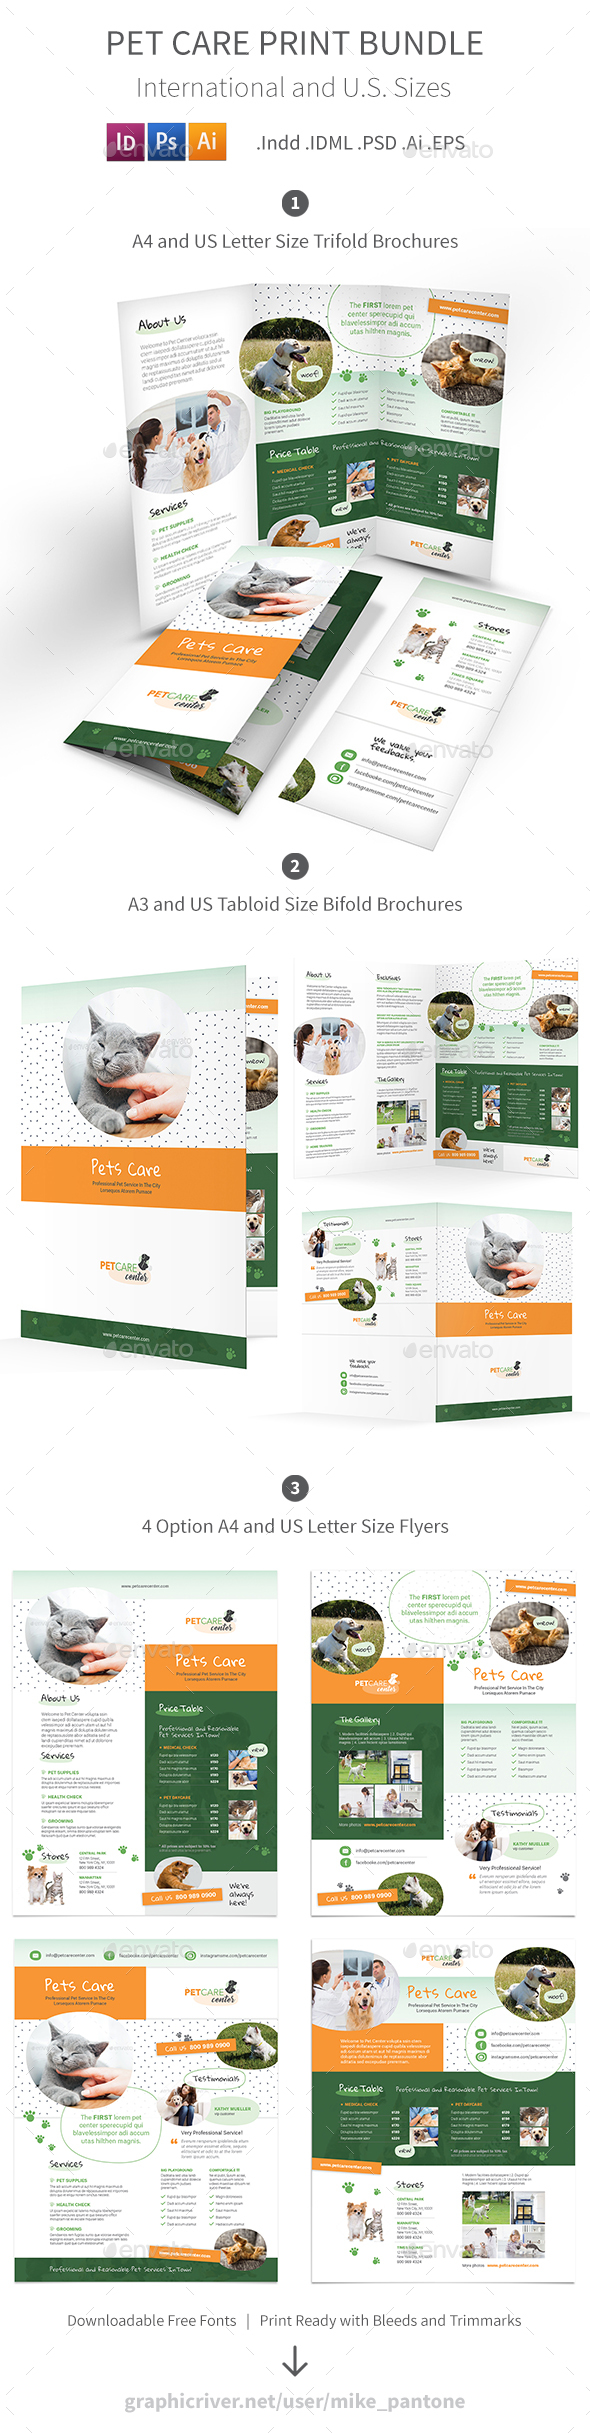 Pet Care Print Bundle 6 - Informational Brochures